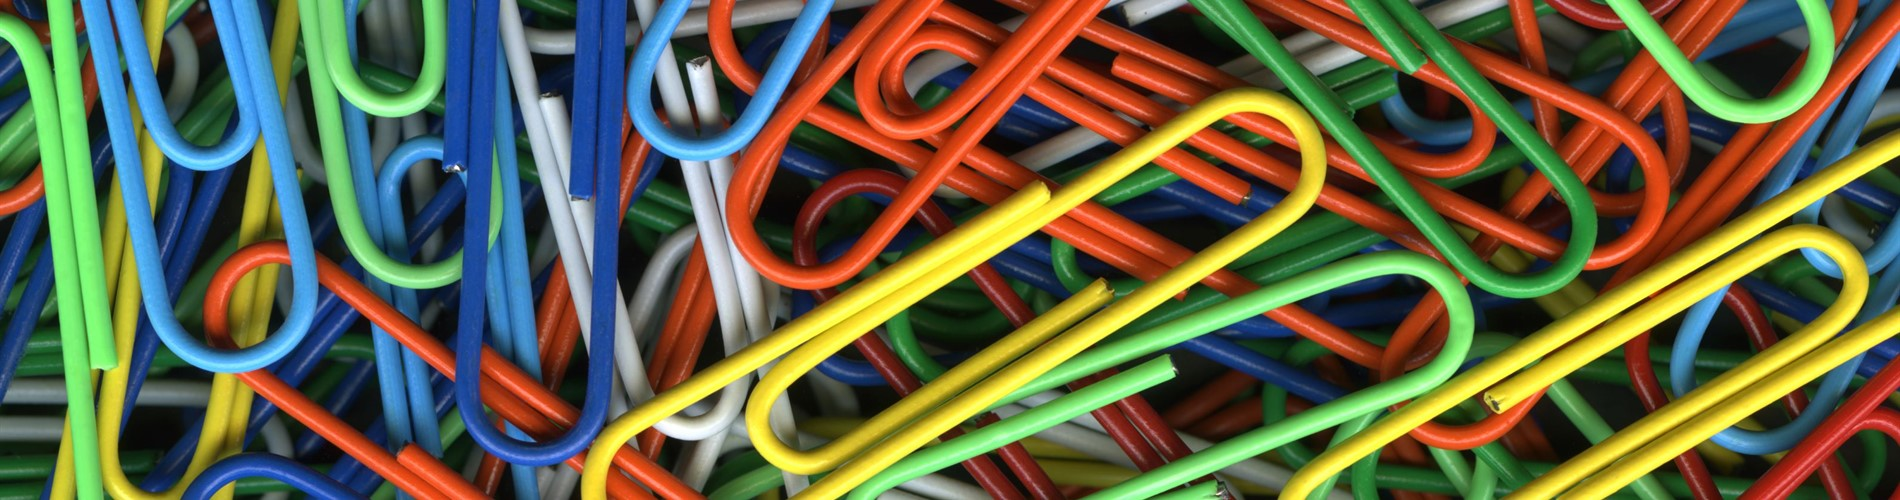 Colorful paper clips